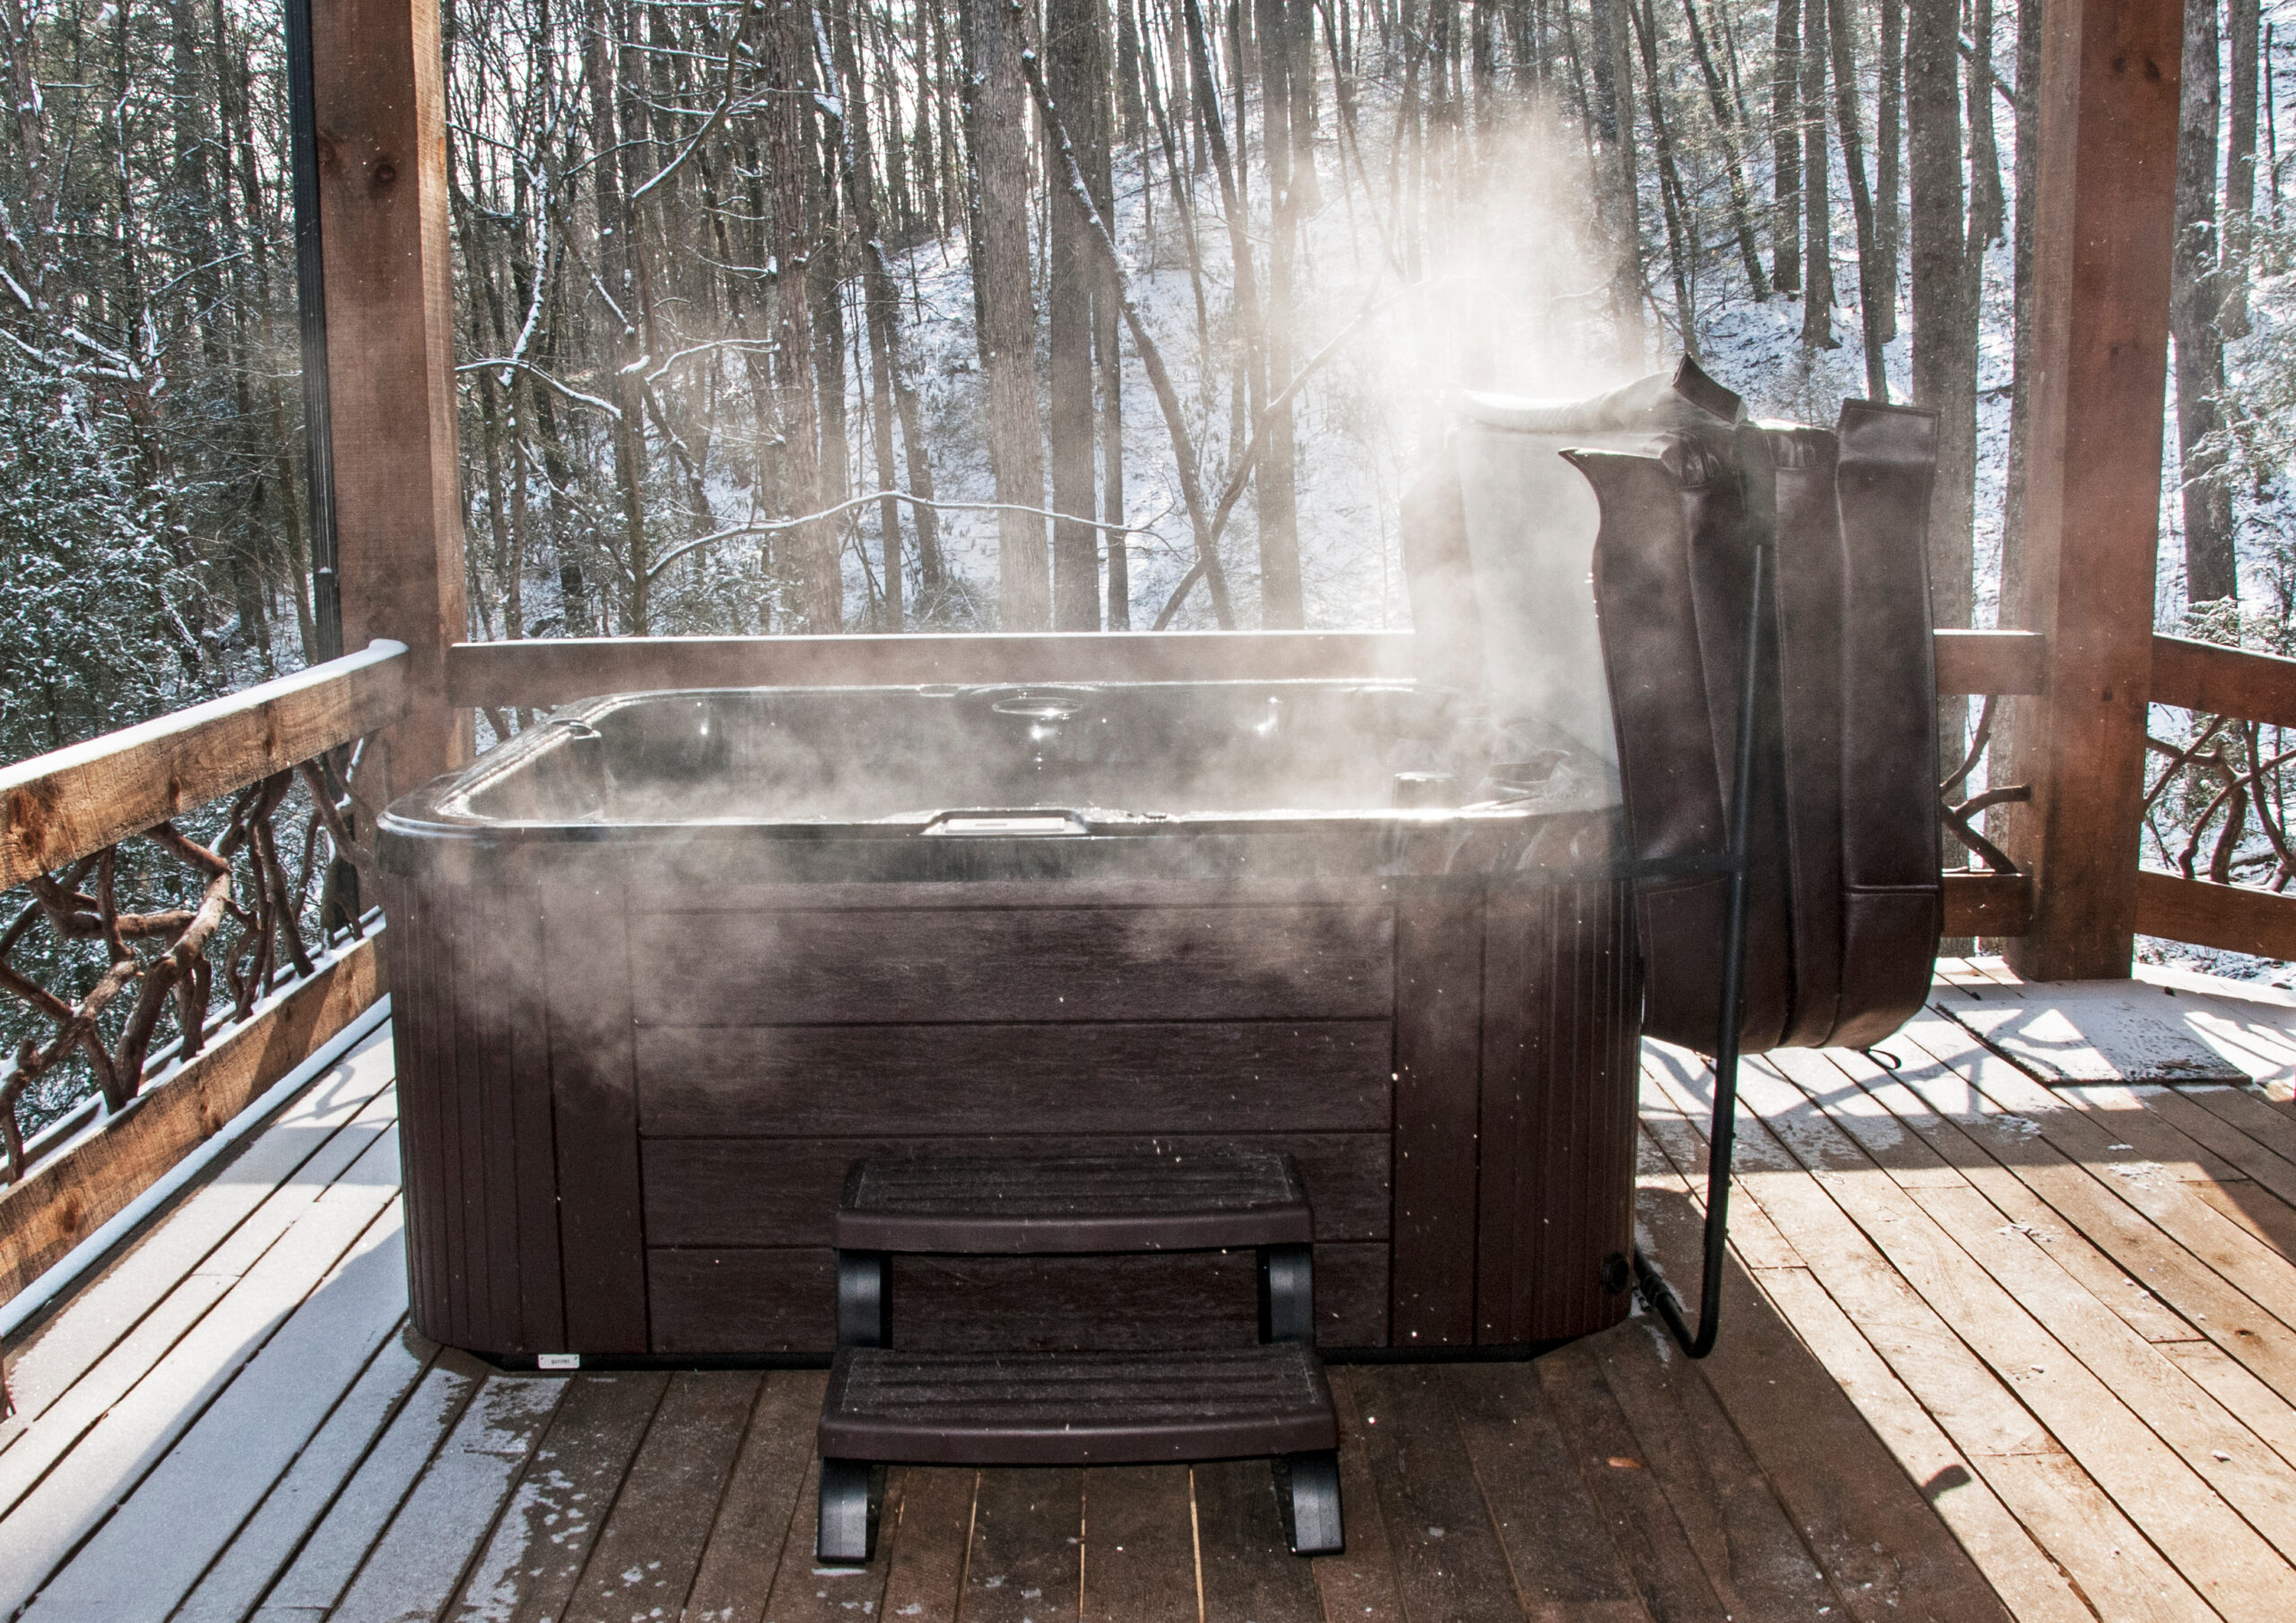 Are hot tubs expensive to run